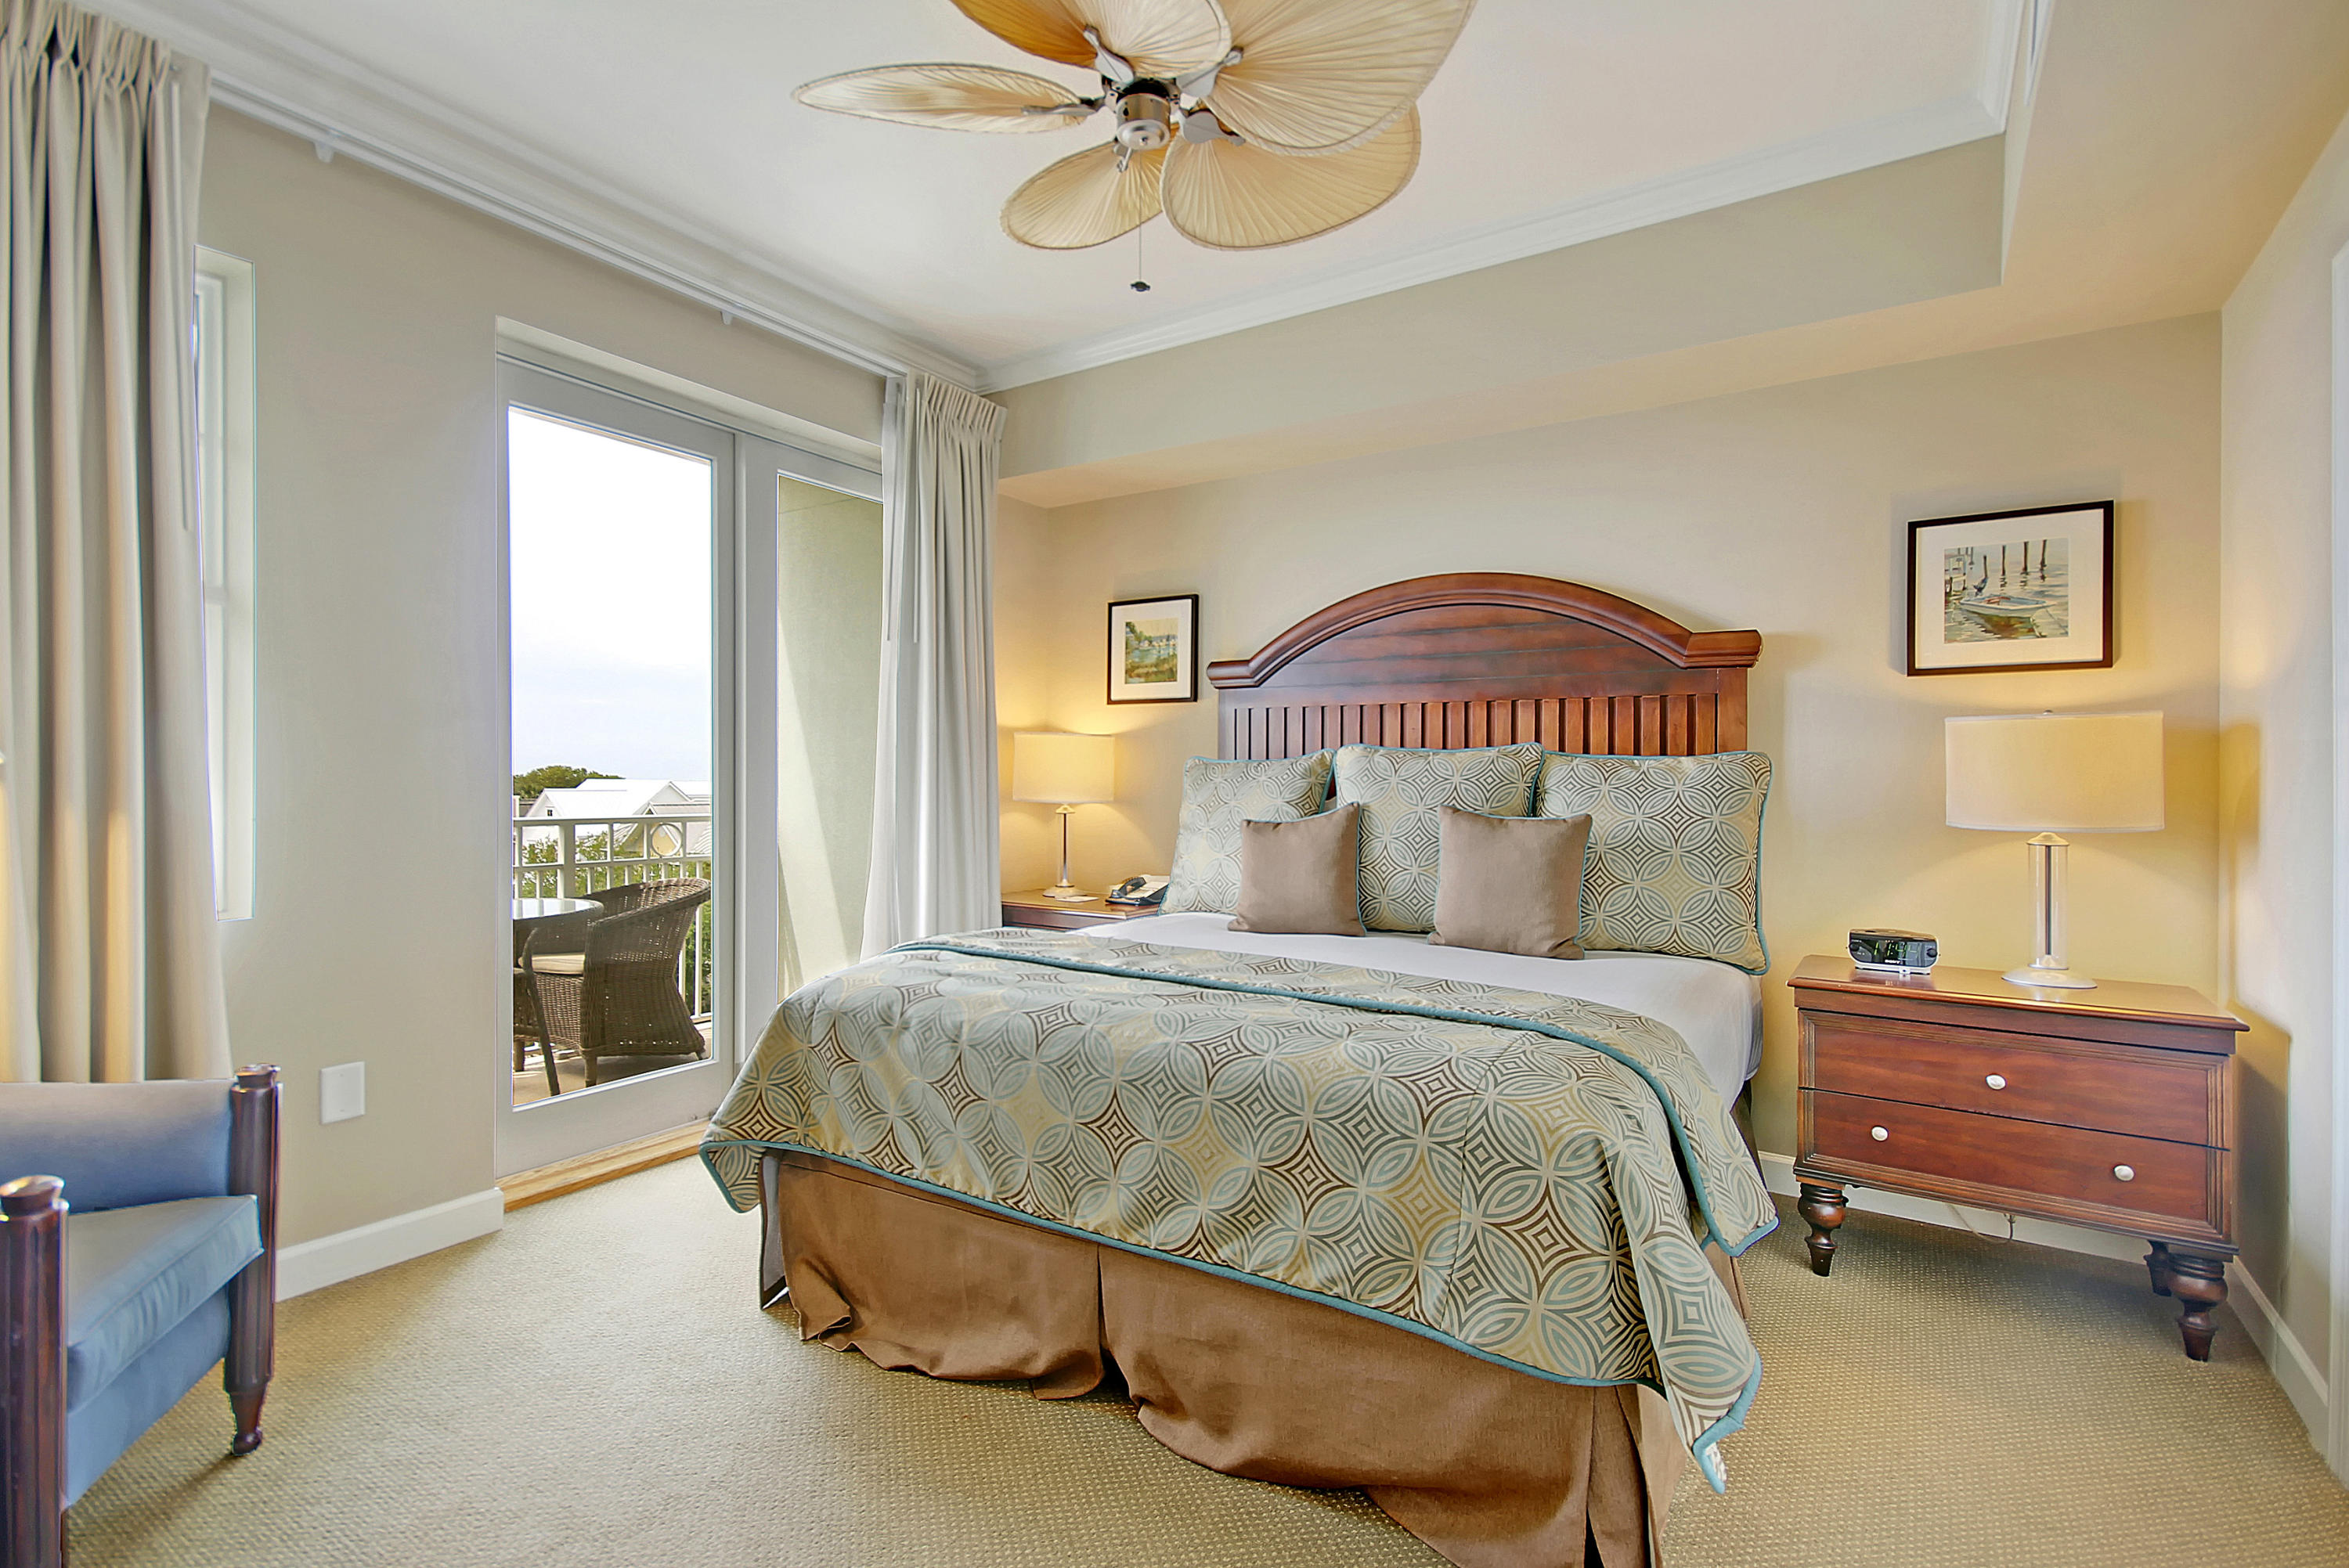 Wild Dunes Homes For Sale - 415/417-B The Village At Wild Dunes, Isle of Palms, SC - 6